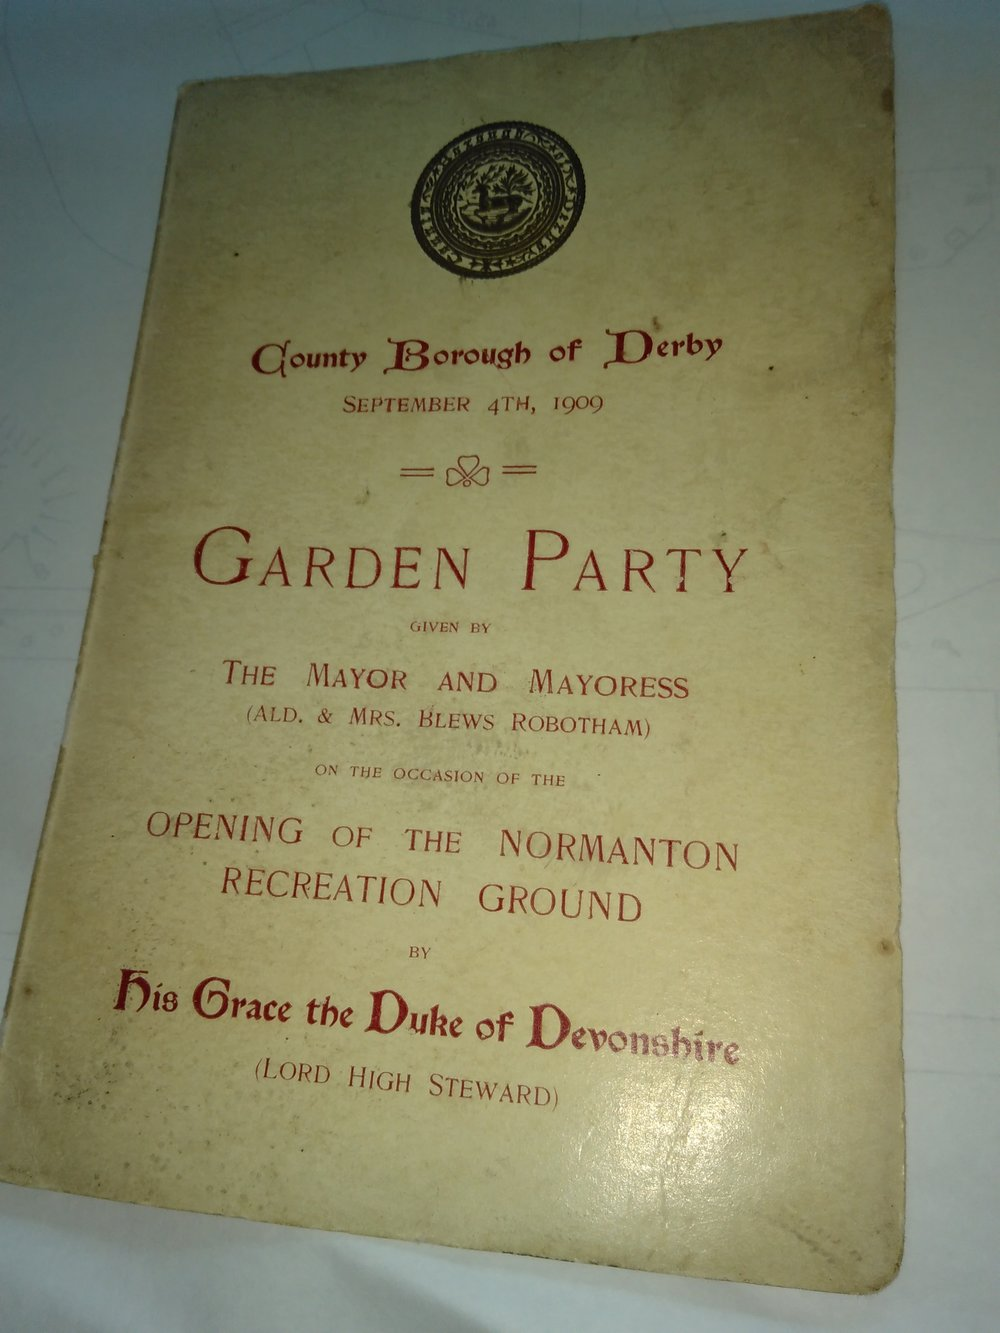 The front cover of the programme from opening day.